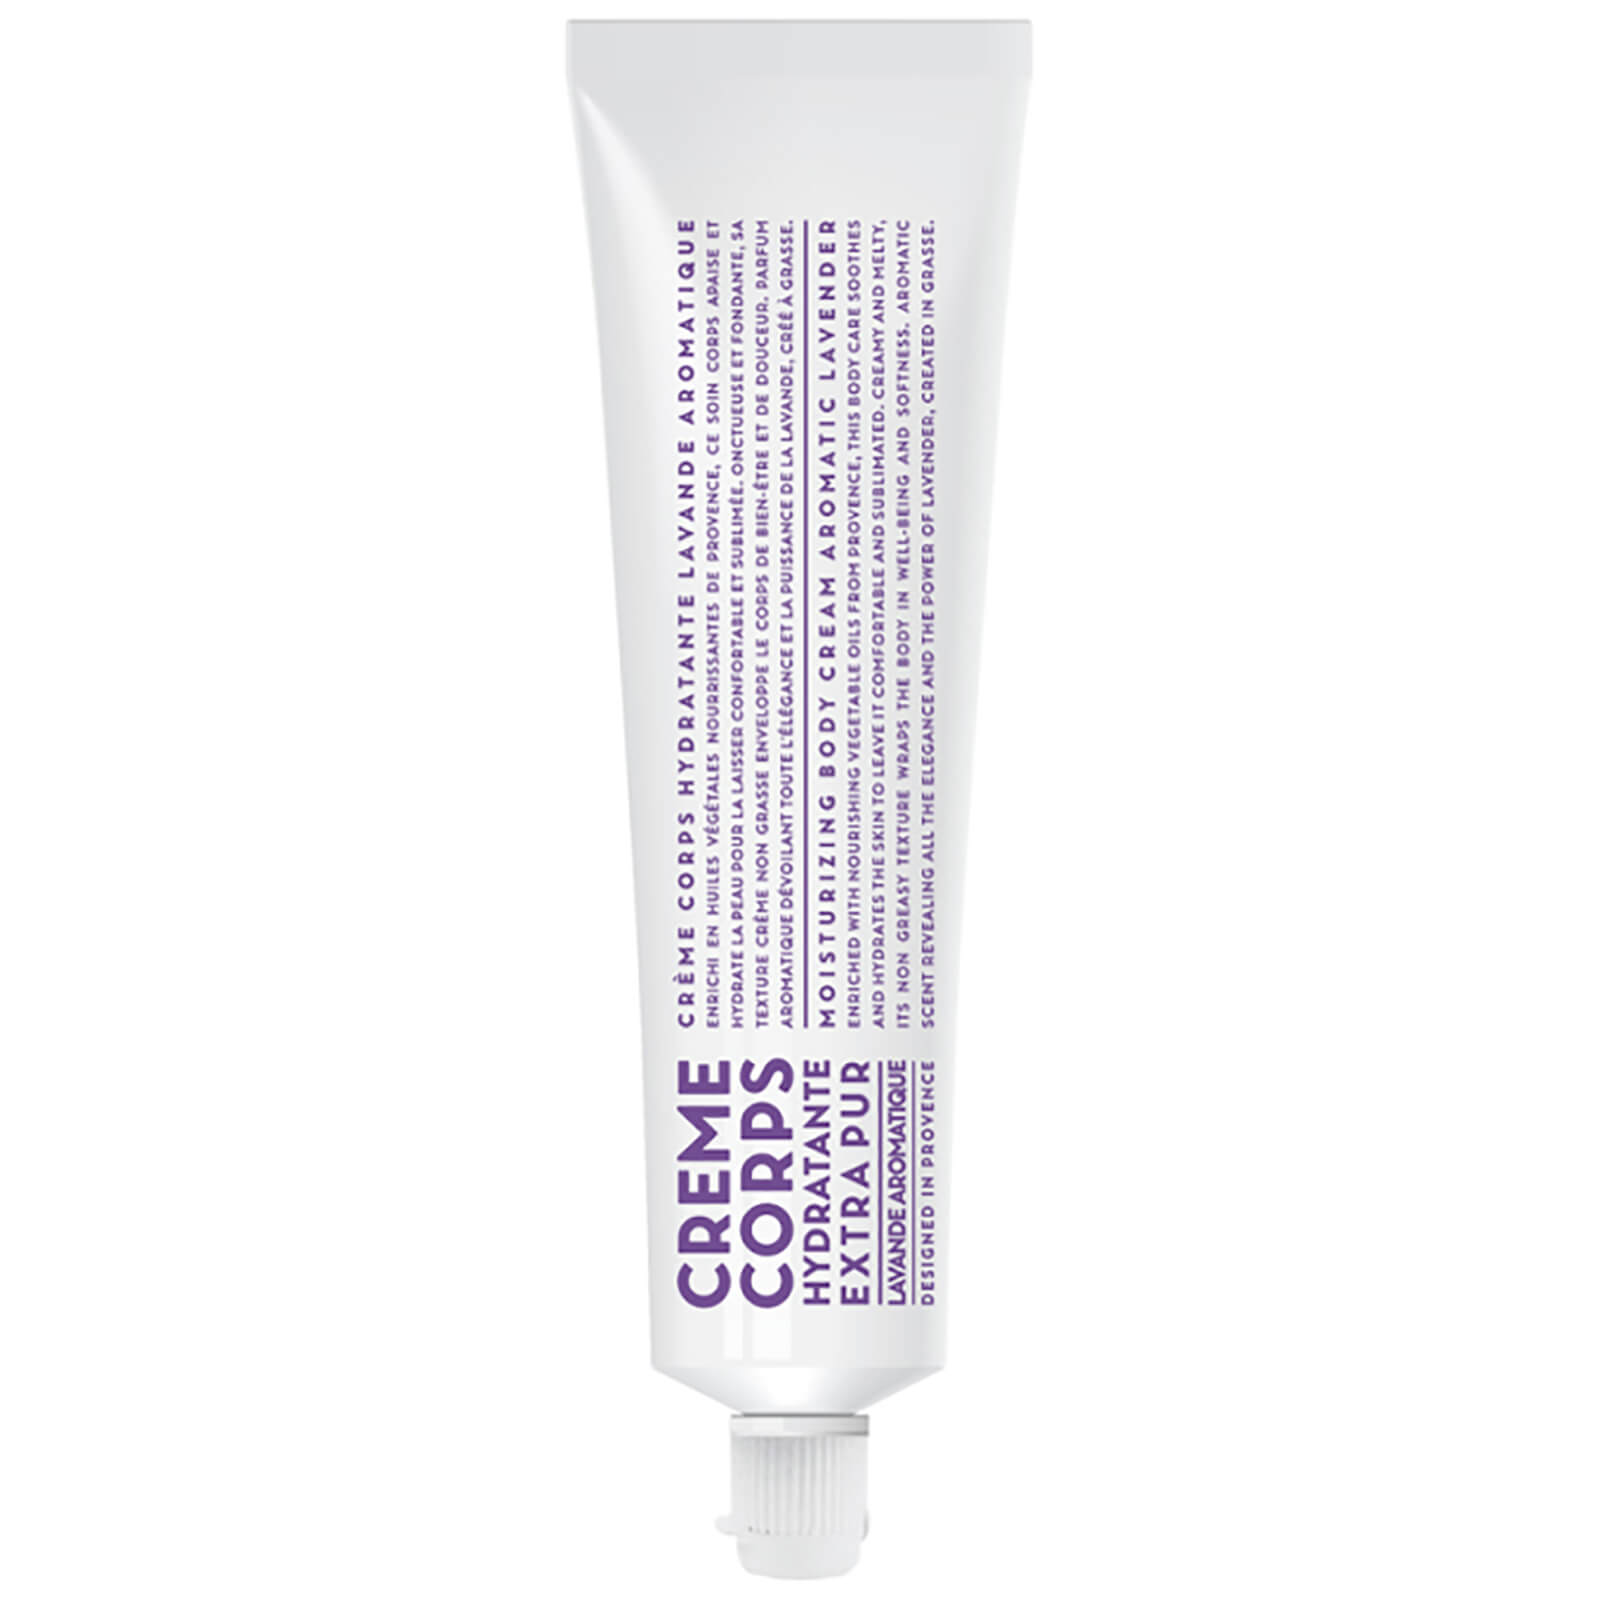 Compagnie de Provence Body Cream 100ml - Aromatic Lavender